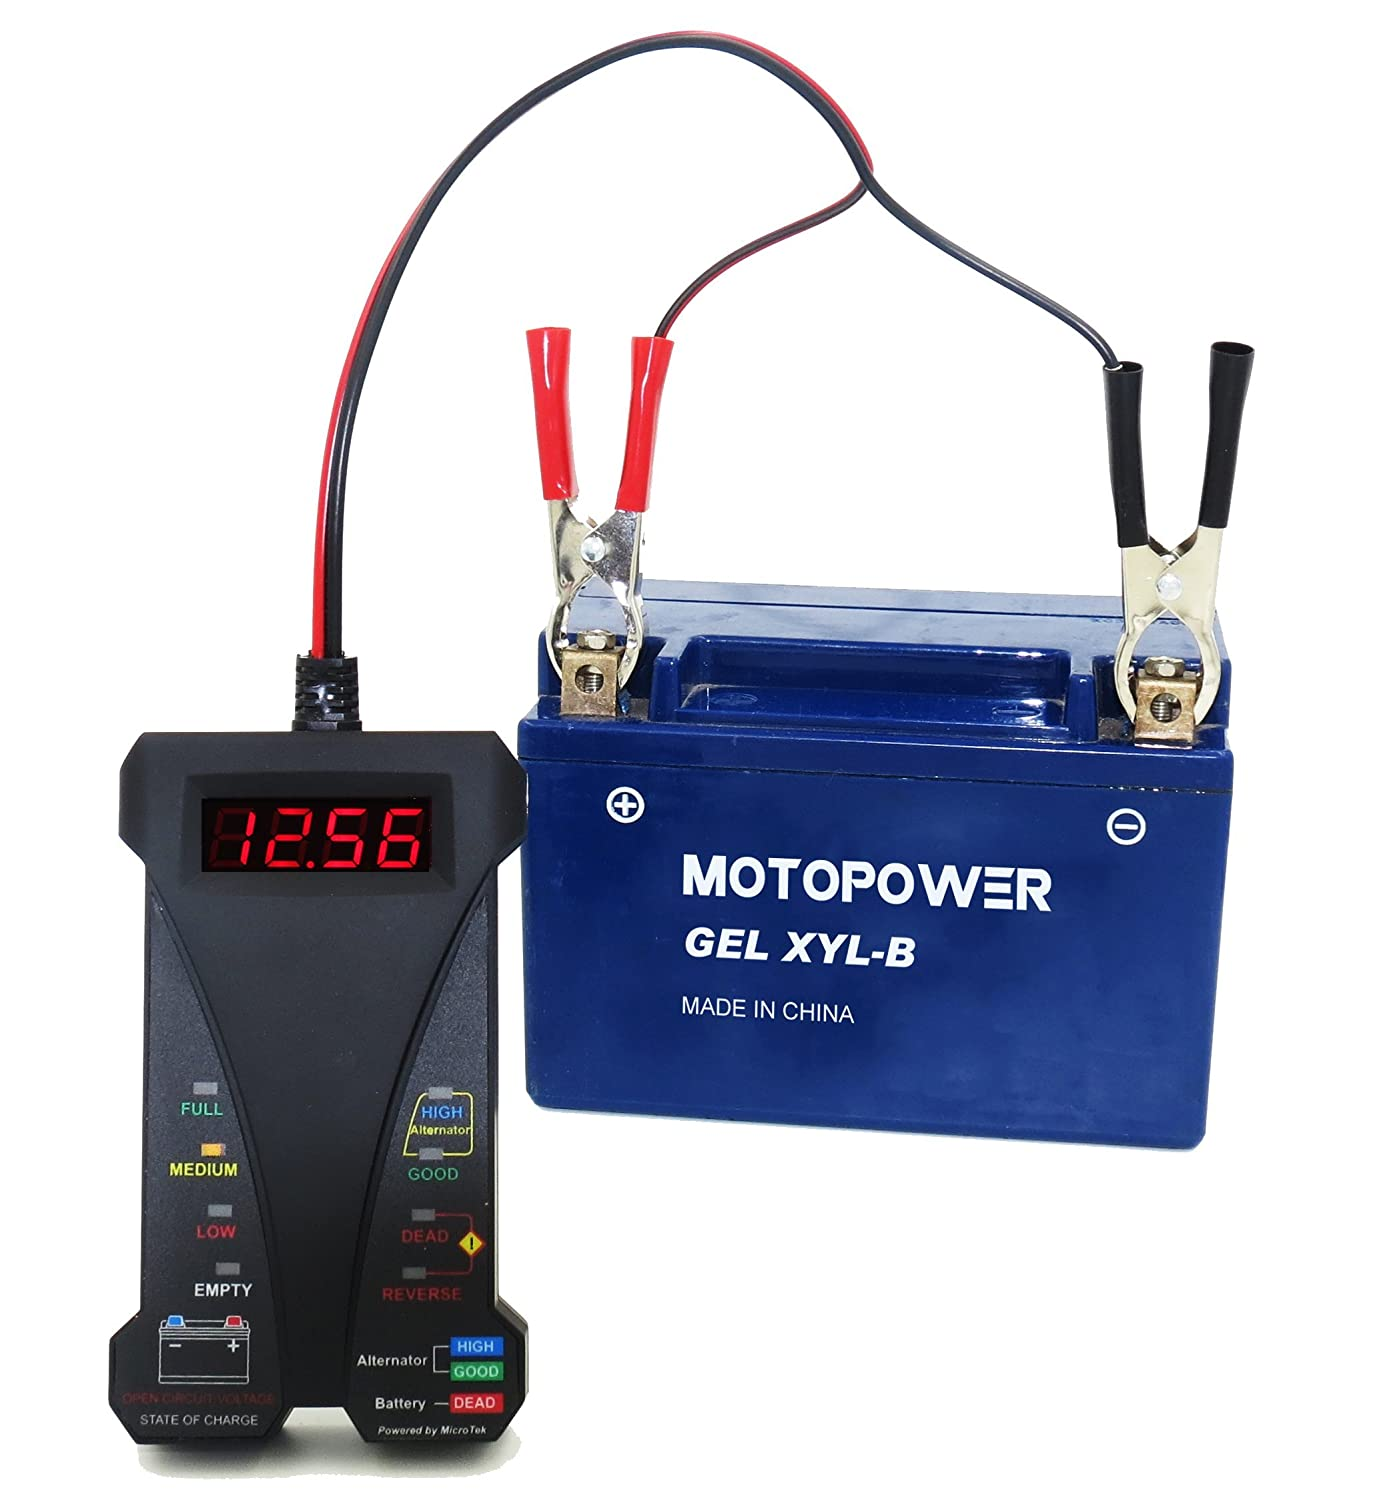 Motopower Mp0514a 12v Digital Battery Tester Voltmeter Circuit Manufacturers In And Charging System Analyzer With Lcd Display Led Indication Black Rubber Paint